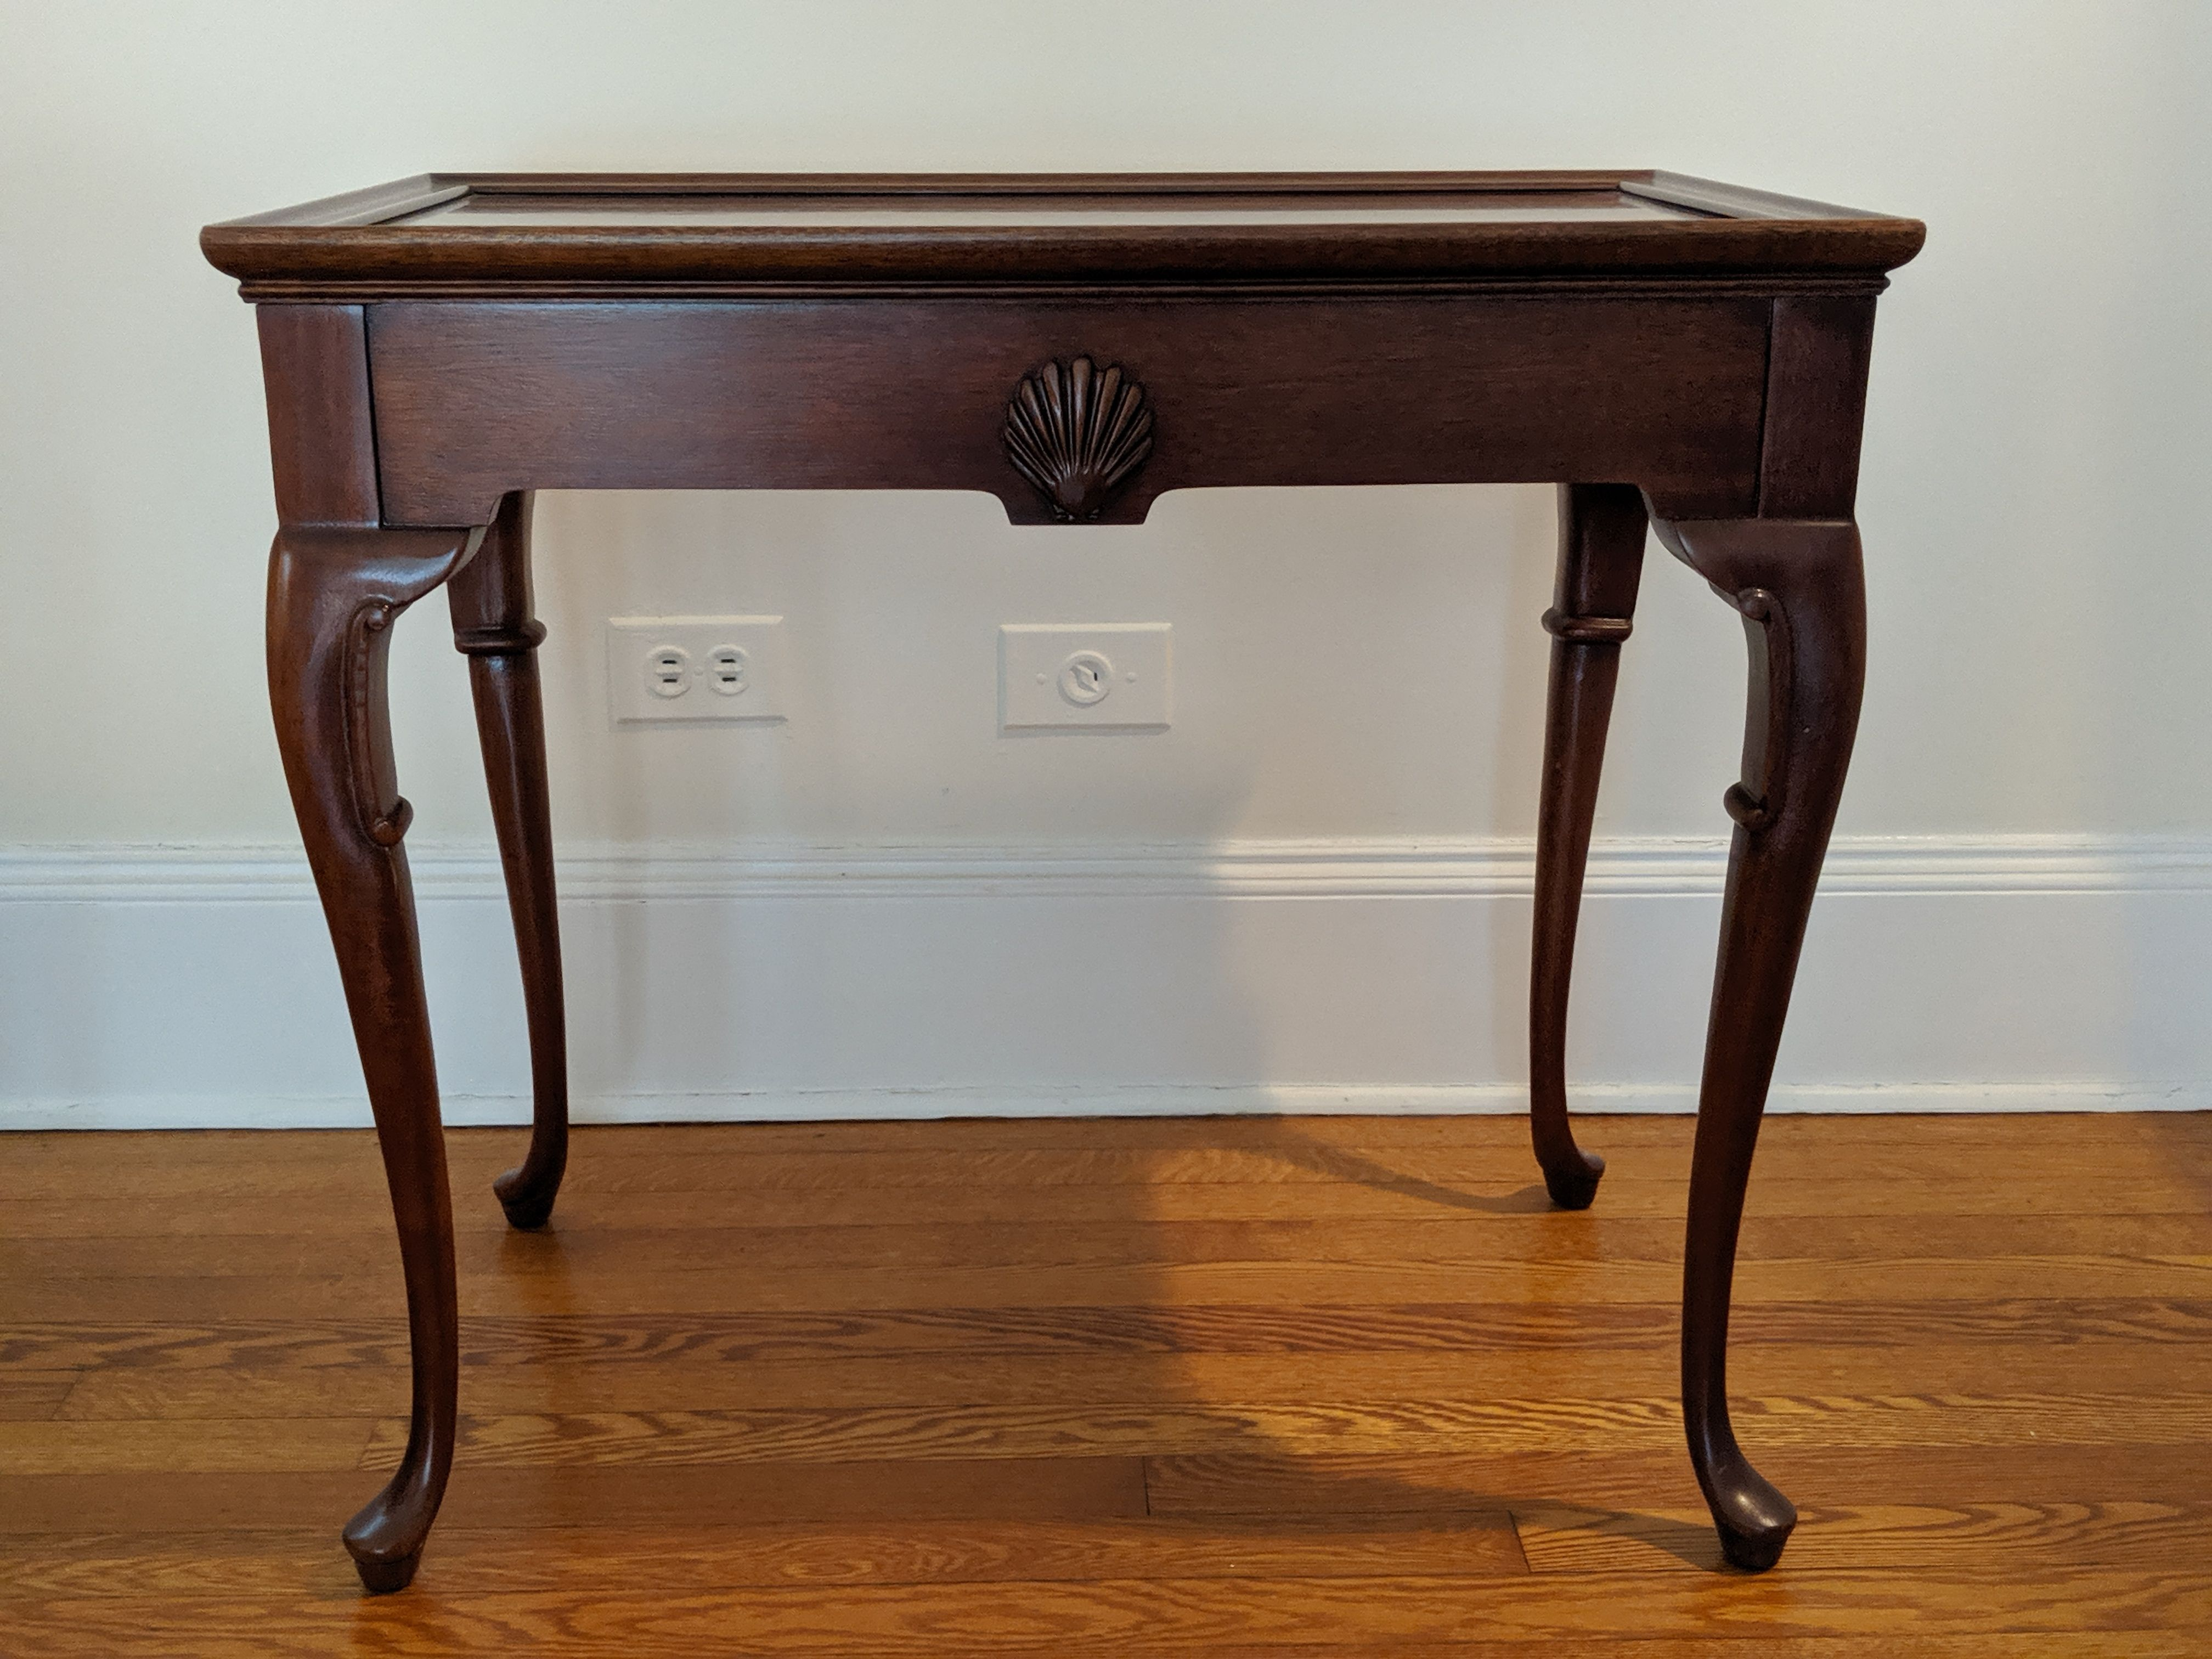 Vintage Accent Tea table by Hickory Chair Company